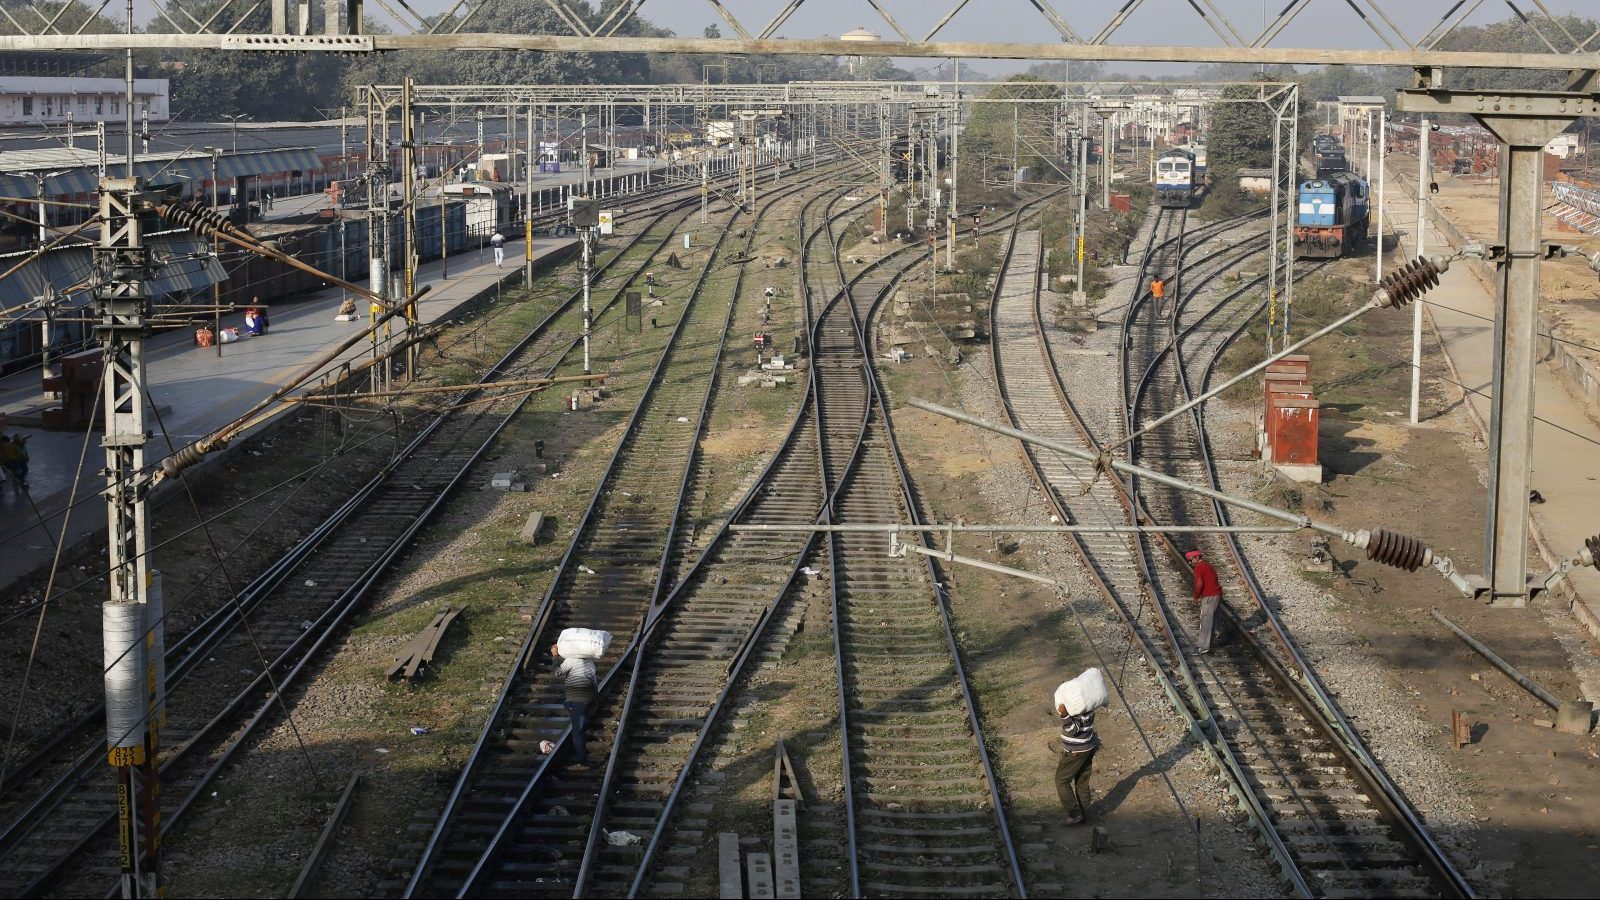 Indian passengers cross railway tracks at a junction train station in Allahabad, India, Thursday, Feb. 1, 2018. India's finance minister has announced a federal budget with a string of populist giveaways, from free cooking gas connection to a health plan for the poor, in an attempt to woo voters ahead of national elections next year. (AP Photo/Rajesh Kumar Singh)